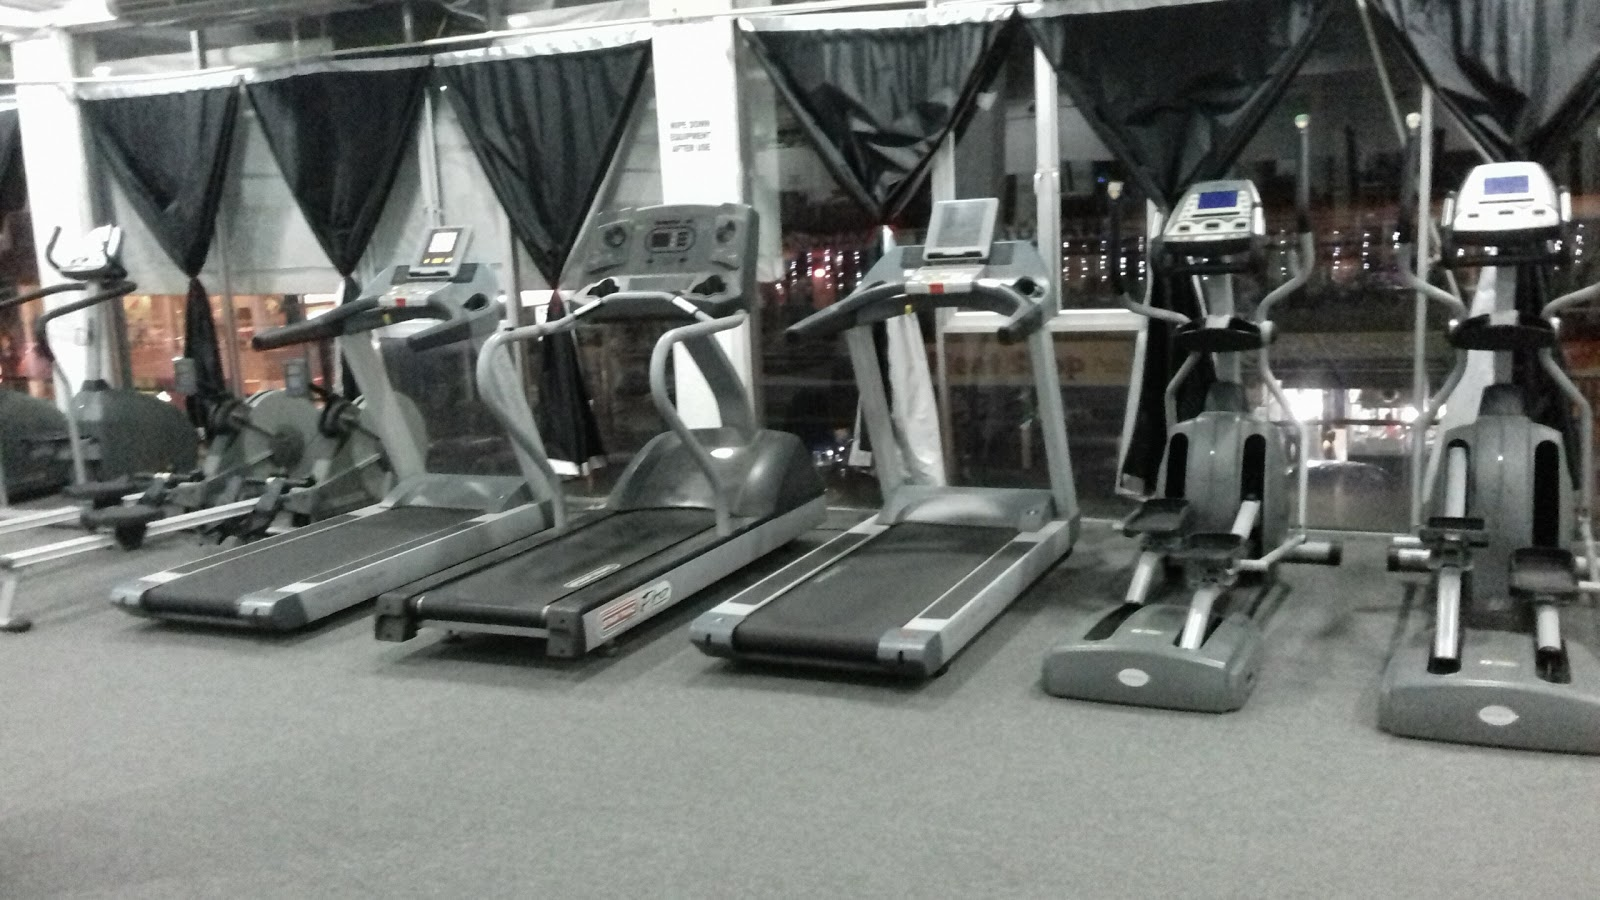 Fit Fitness Center - photo